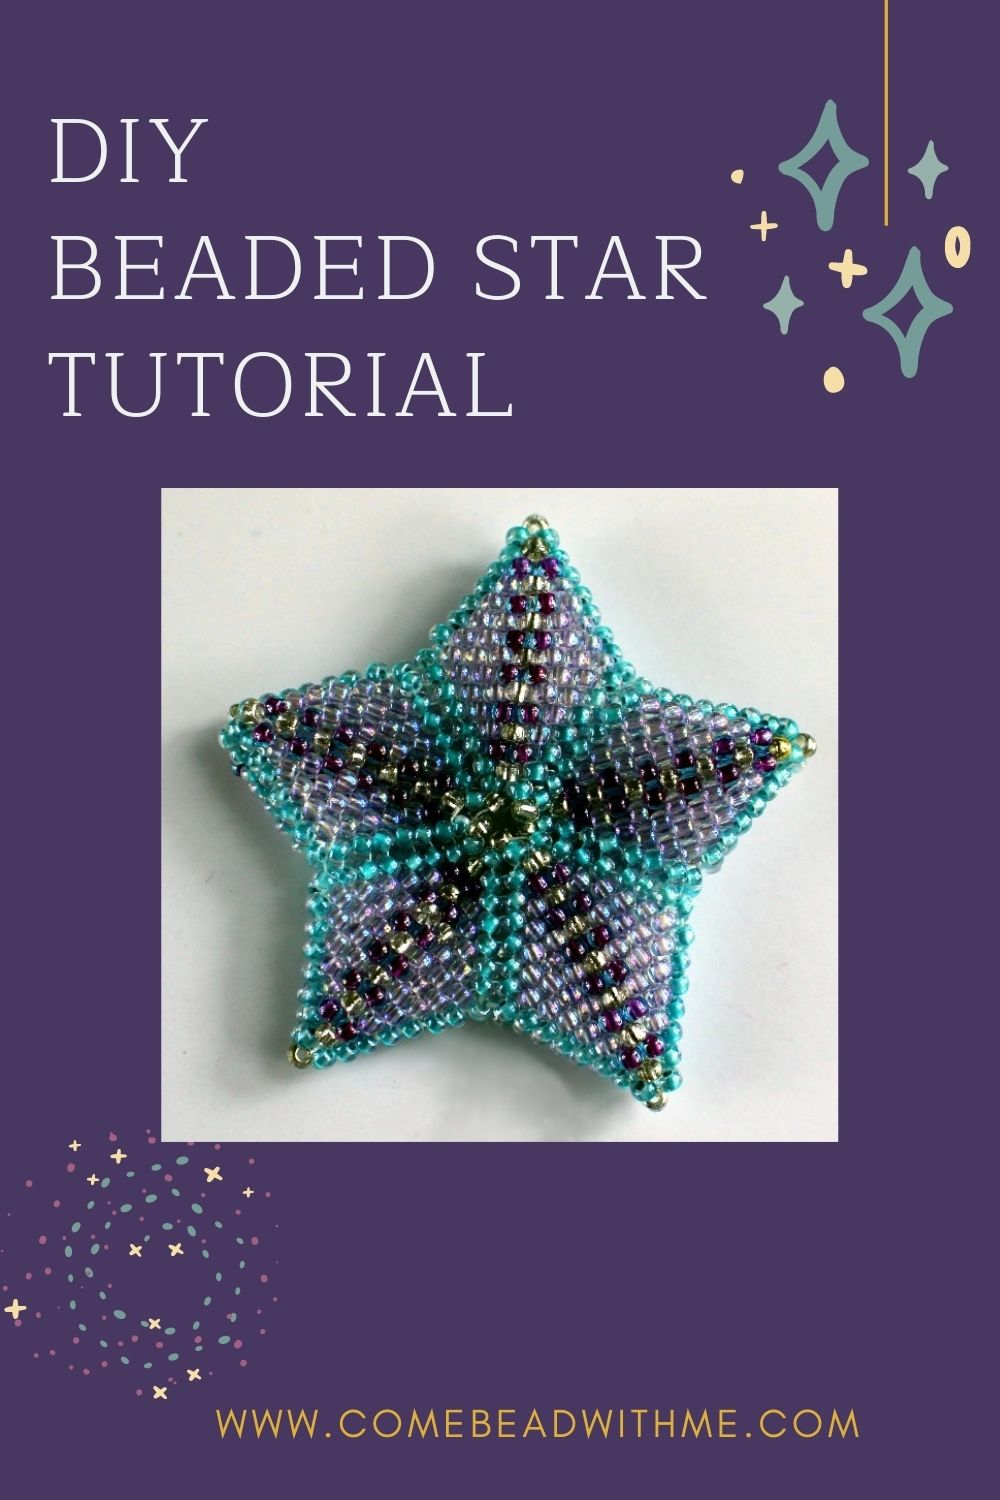 How to Bead a Star